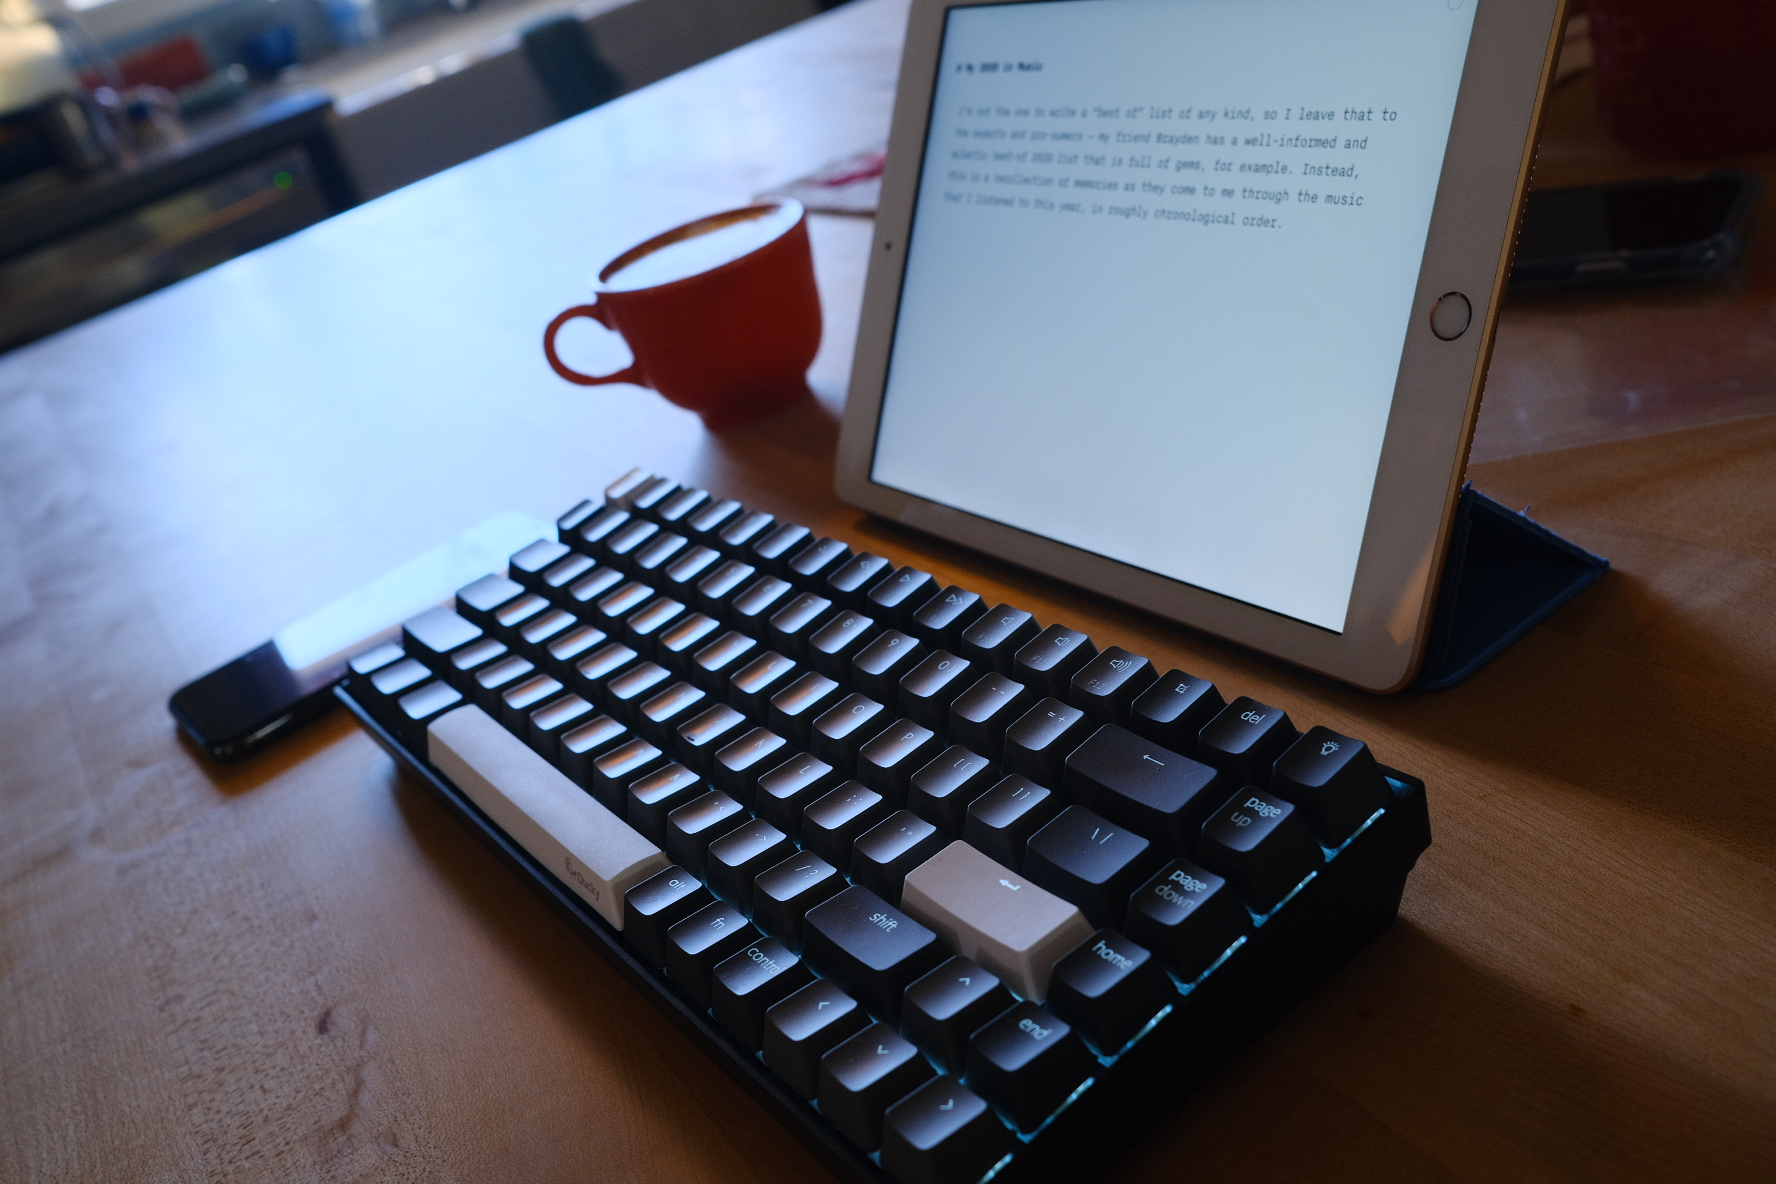 An iPad propped behind a dark gray and white keyboard, beside an orange coffee cup